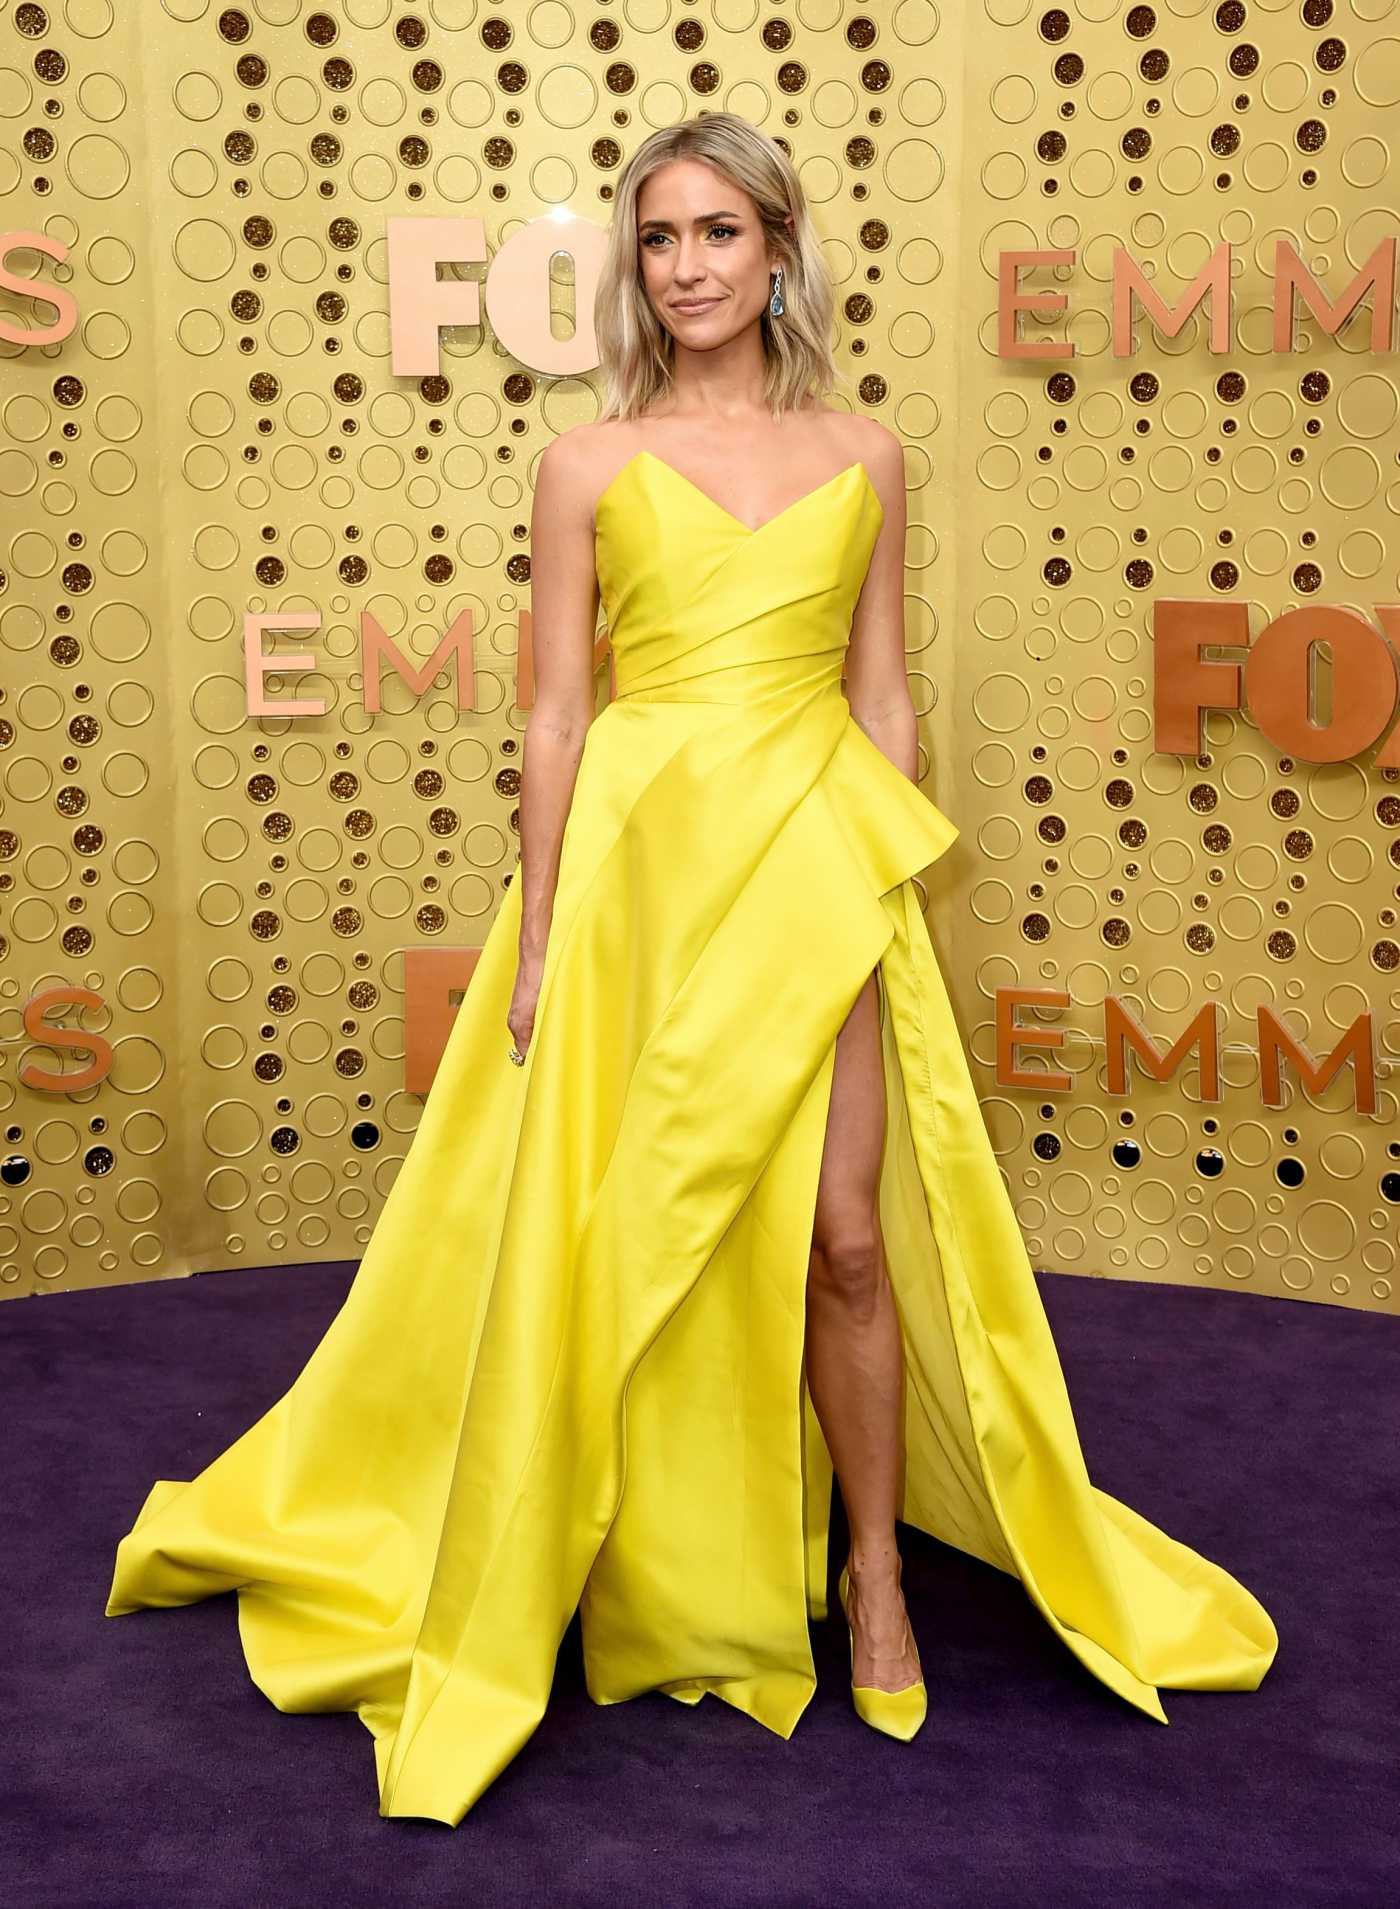 Kristin Cavallari Attends the 71st Emmy Awards at Microsoft Theater in Los Angeles 09/22/2019